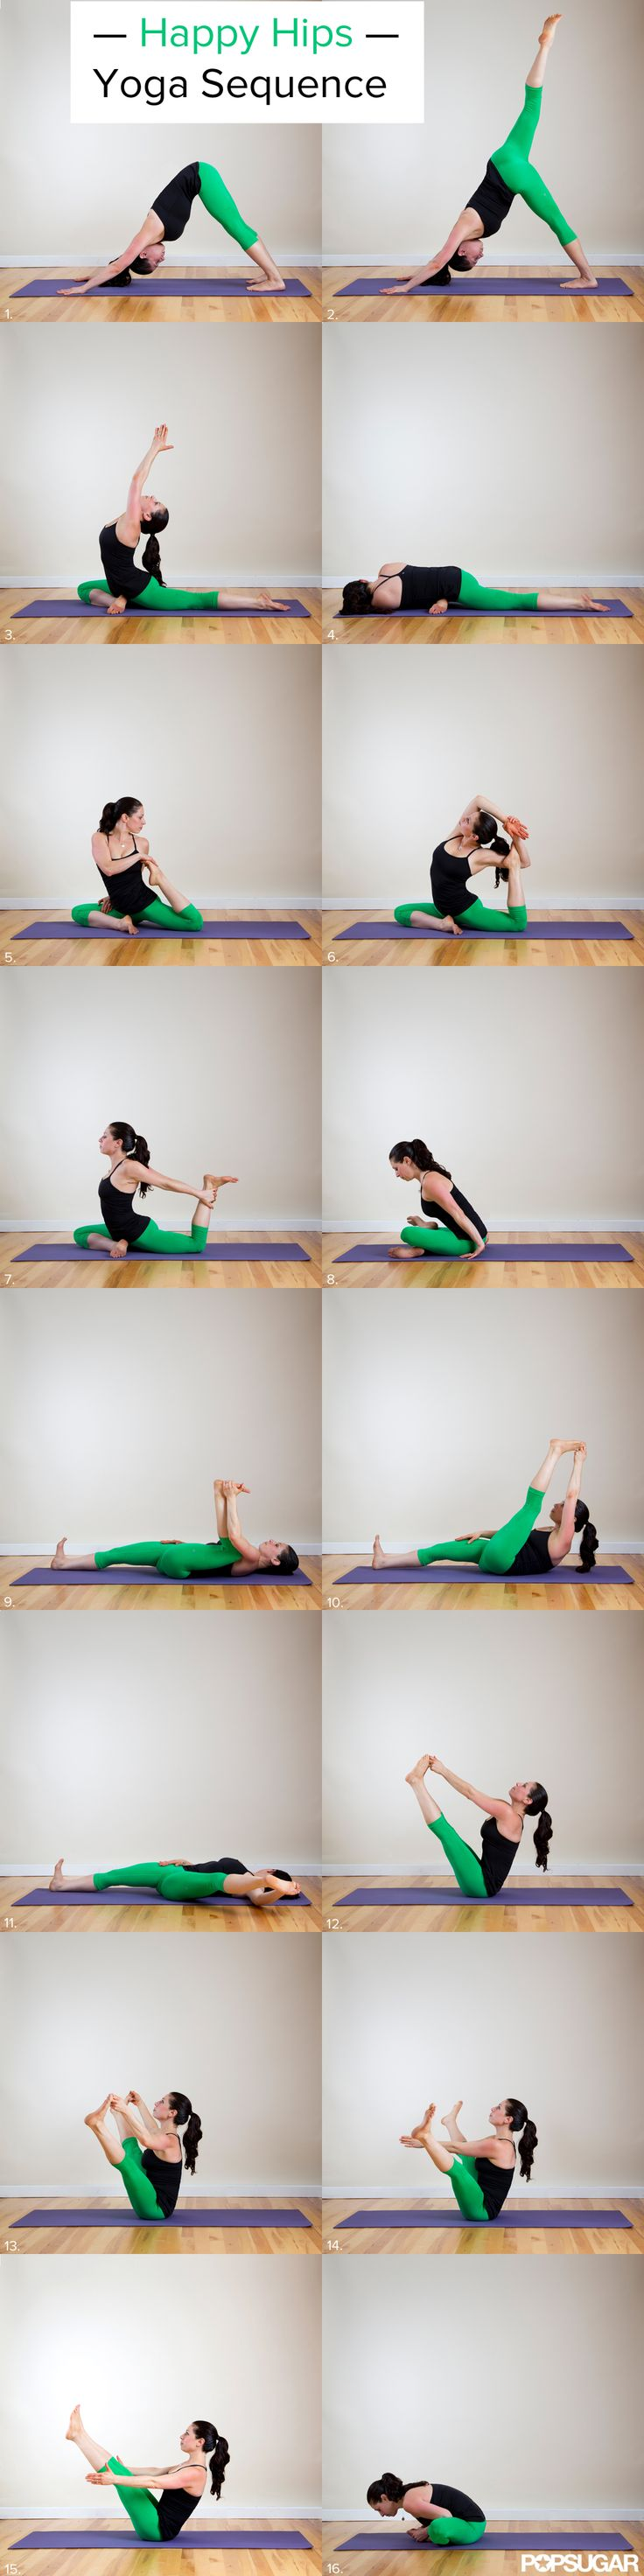 Happy Hips Yoga Sequence - Runners and the deskbound rejoice! Your tight hips wi...